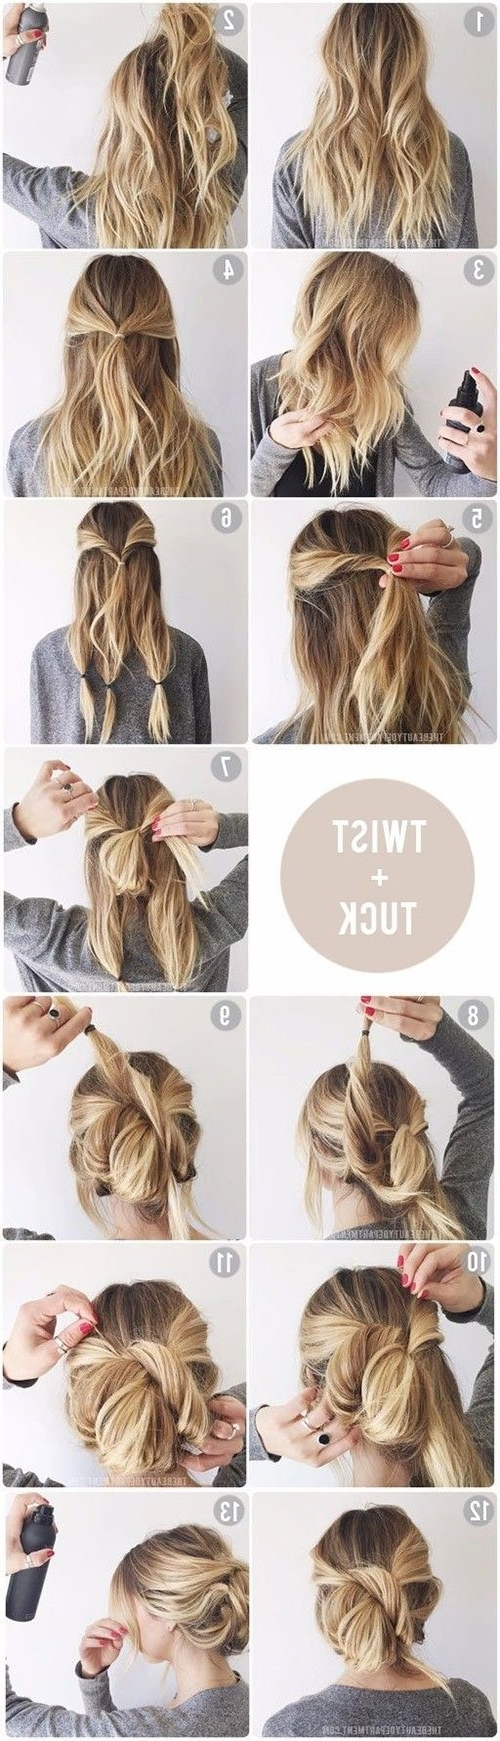 Long Hair Updos, How To Style For Prom, Hairstyle Tutorials Pertaining To Long Hair Easy Updo Hairstyles (View 13 of 15)